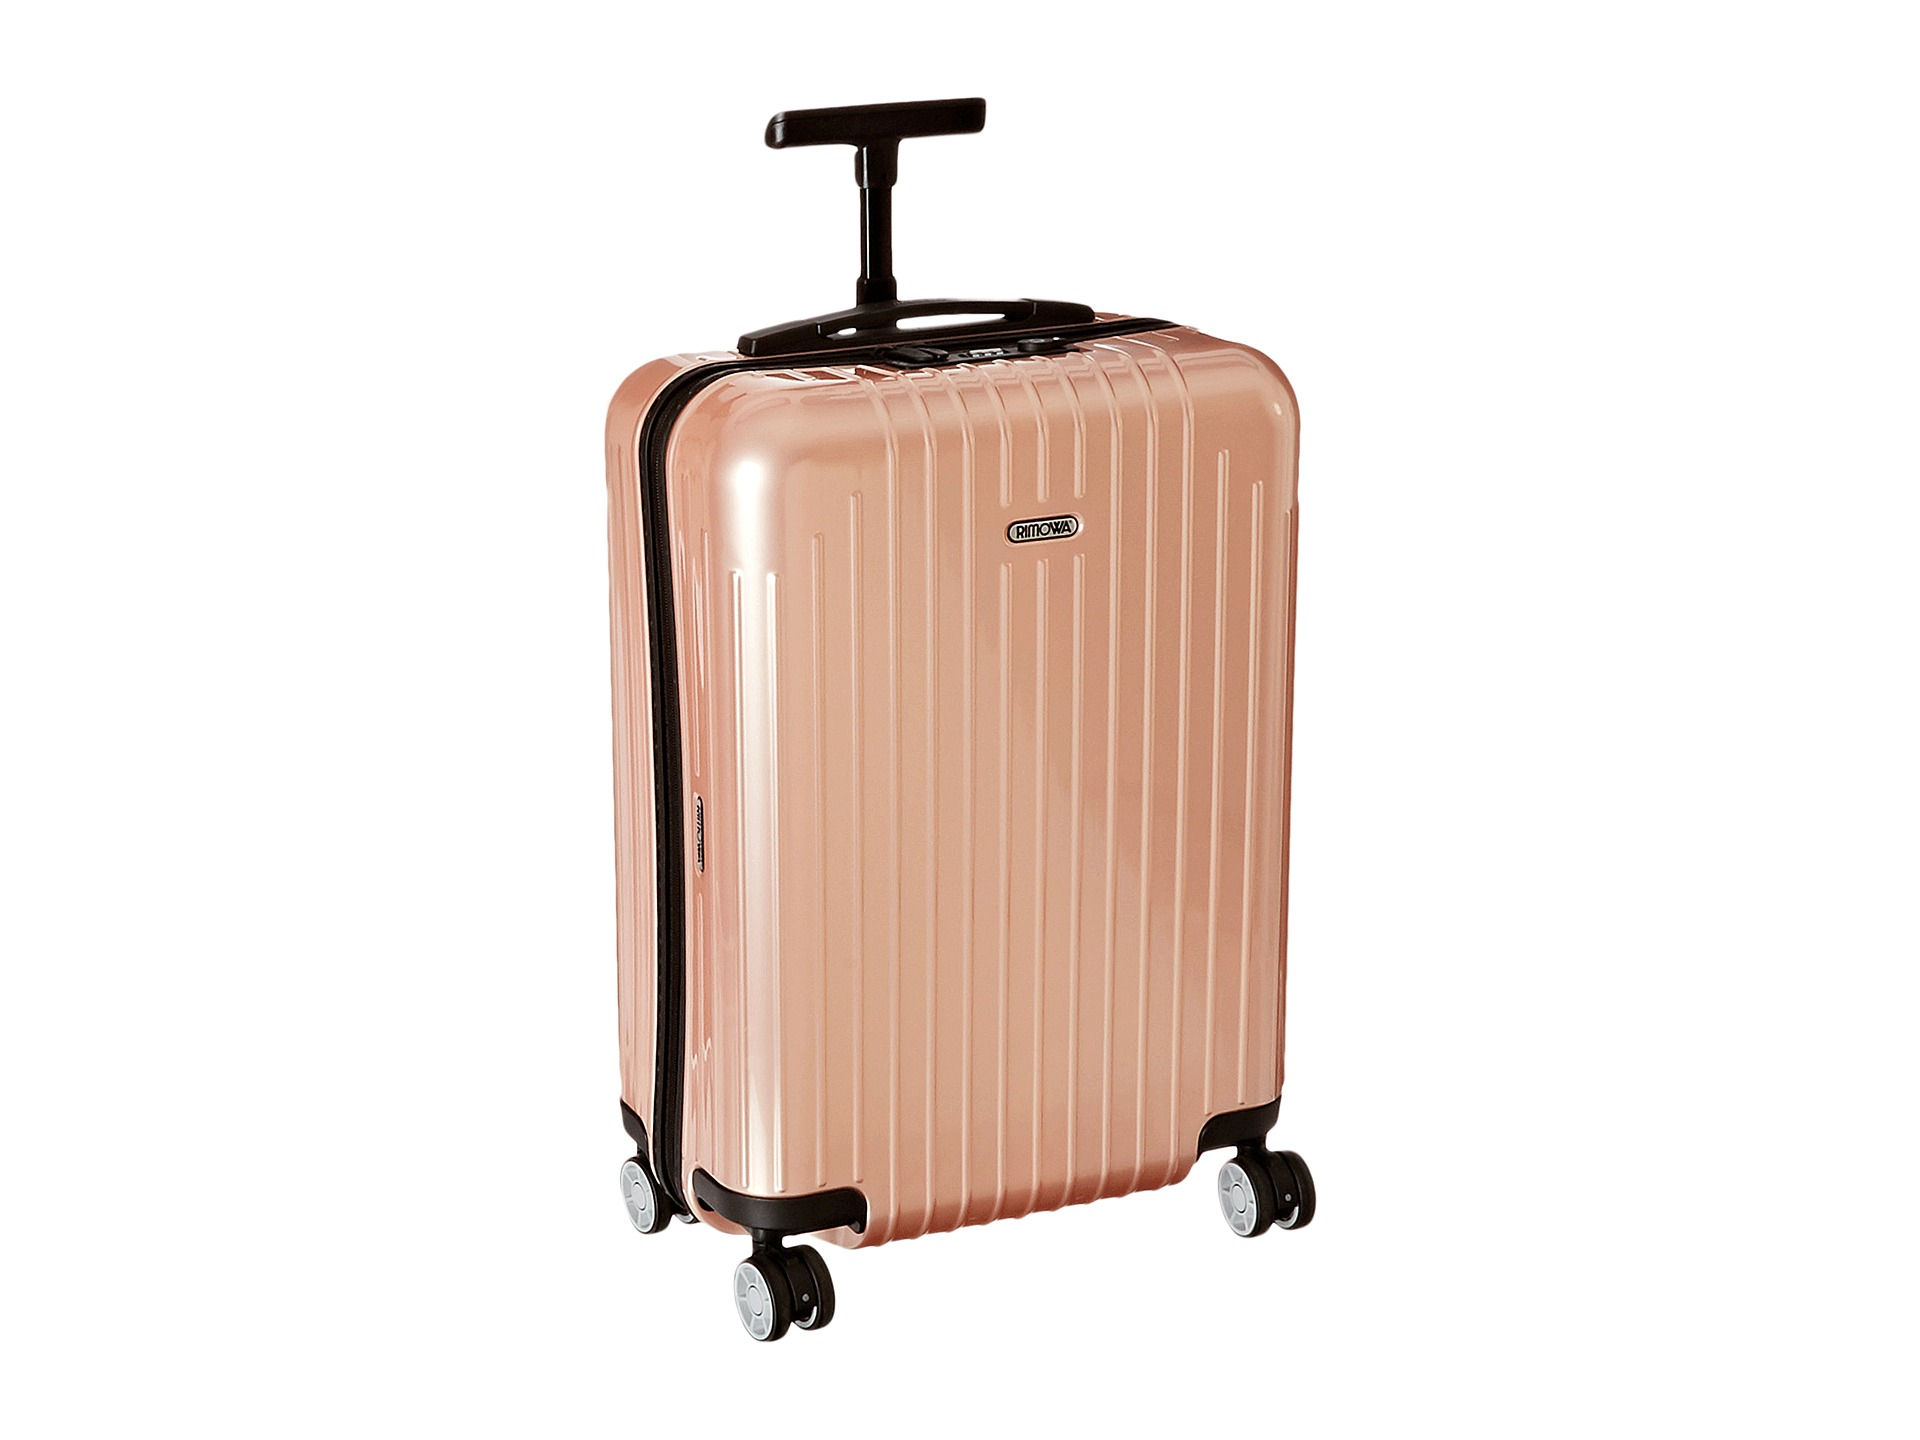 rimowa salsa air cabin multiwheel iata bags shipped free at zappos. Black Bedroom Furniture Sets. Home Design Ideas